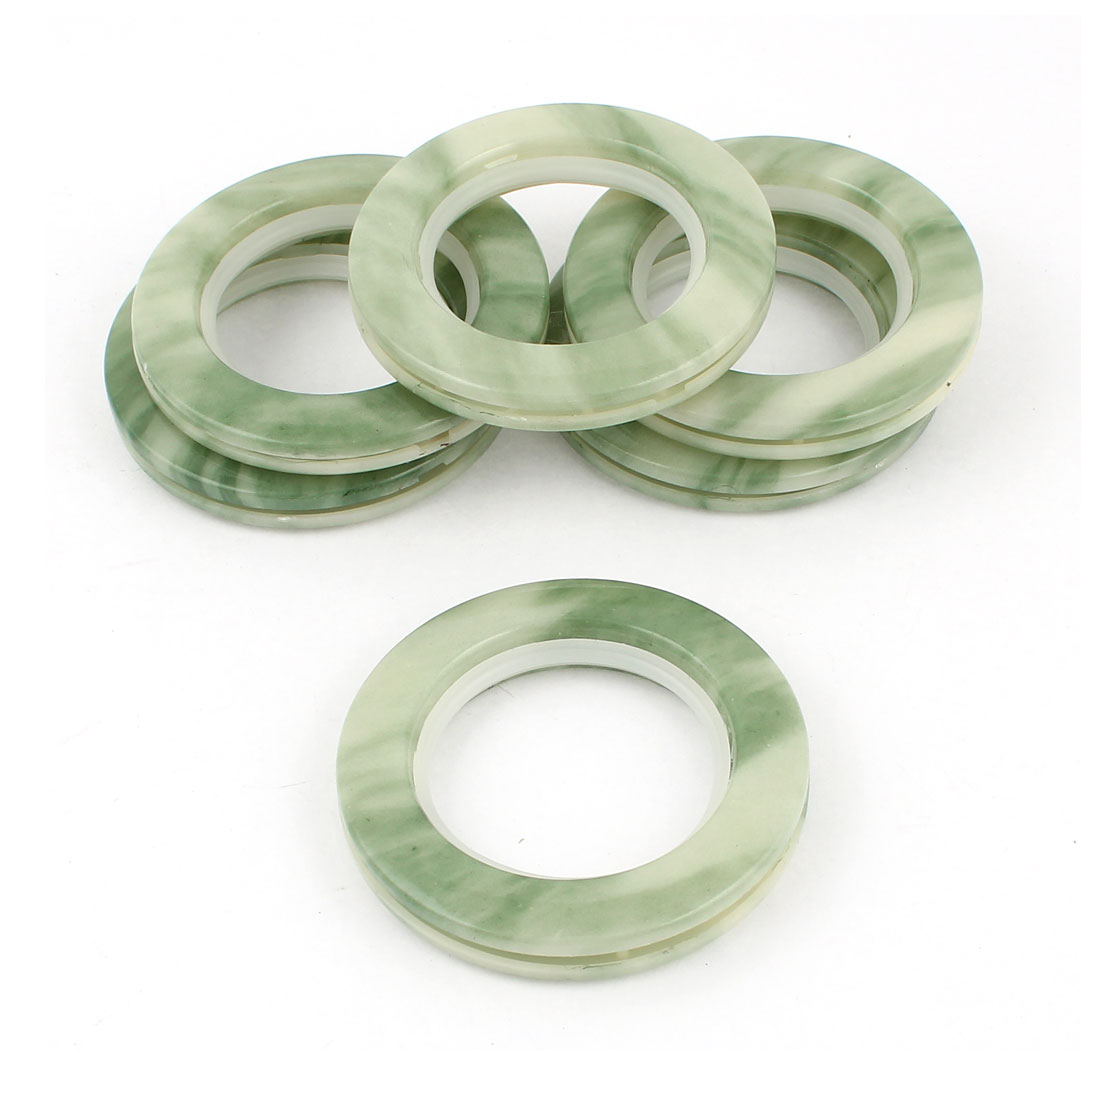 6 Pcs Round Shape Green Plastic Curtain Rings 44mm Inner Dia